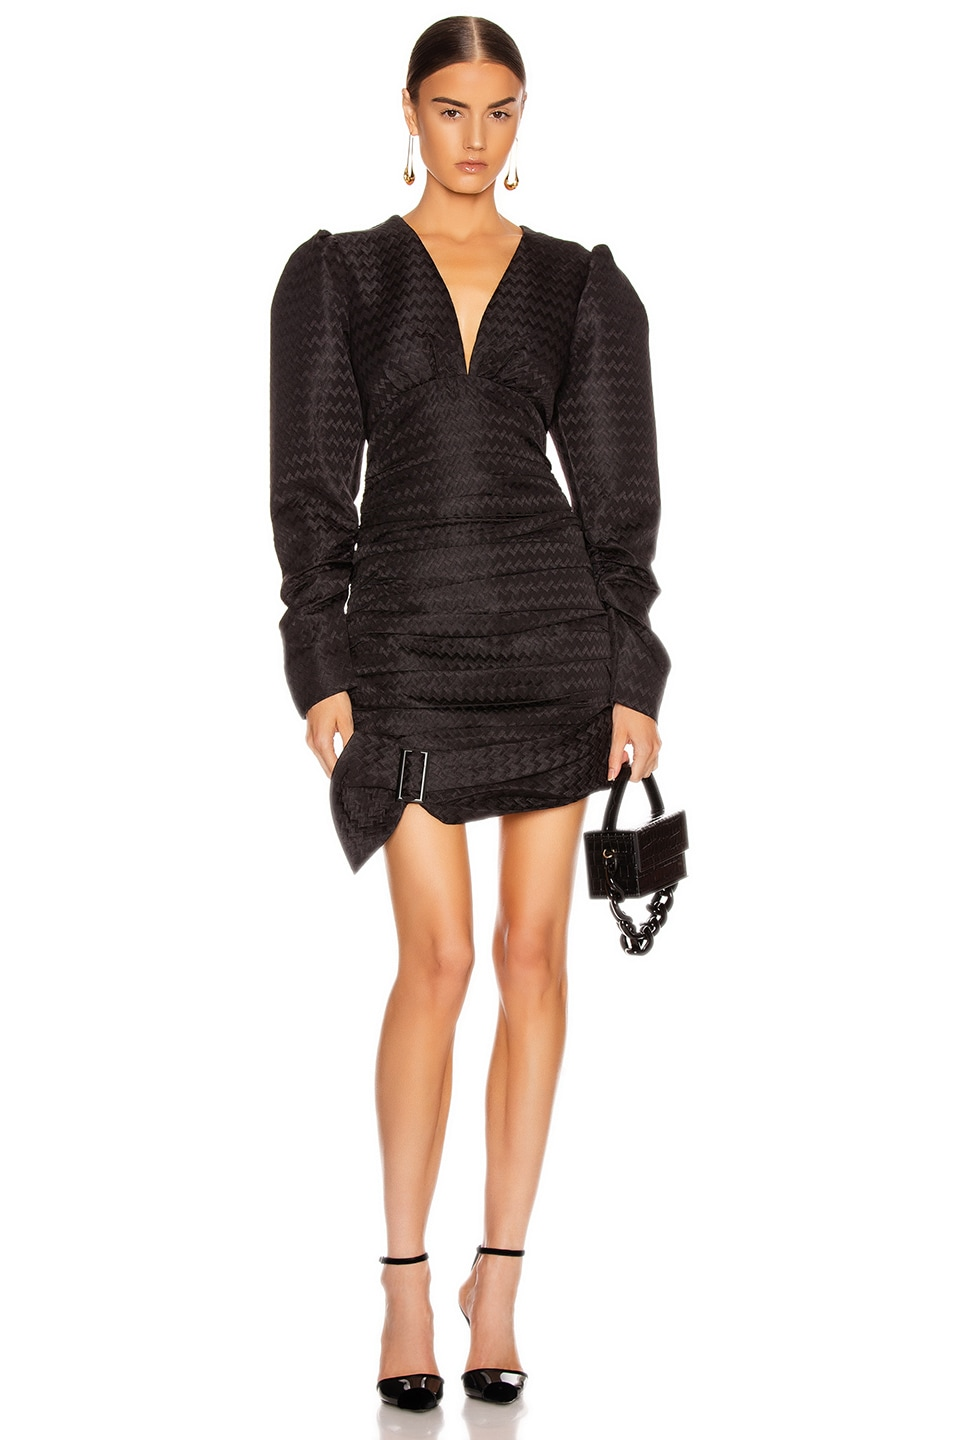 Image 1 of Atoir Was Loved Dress in Embossed Black